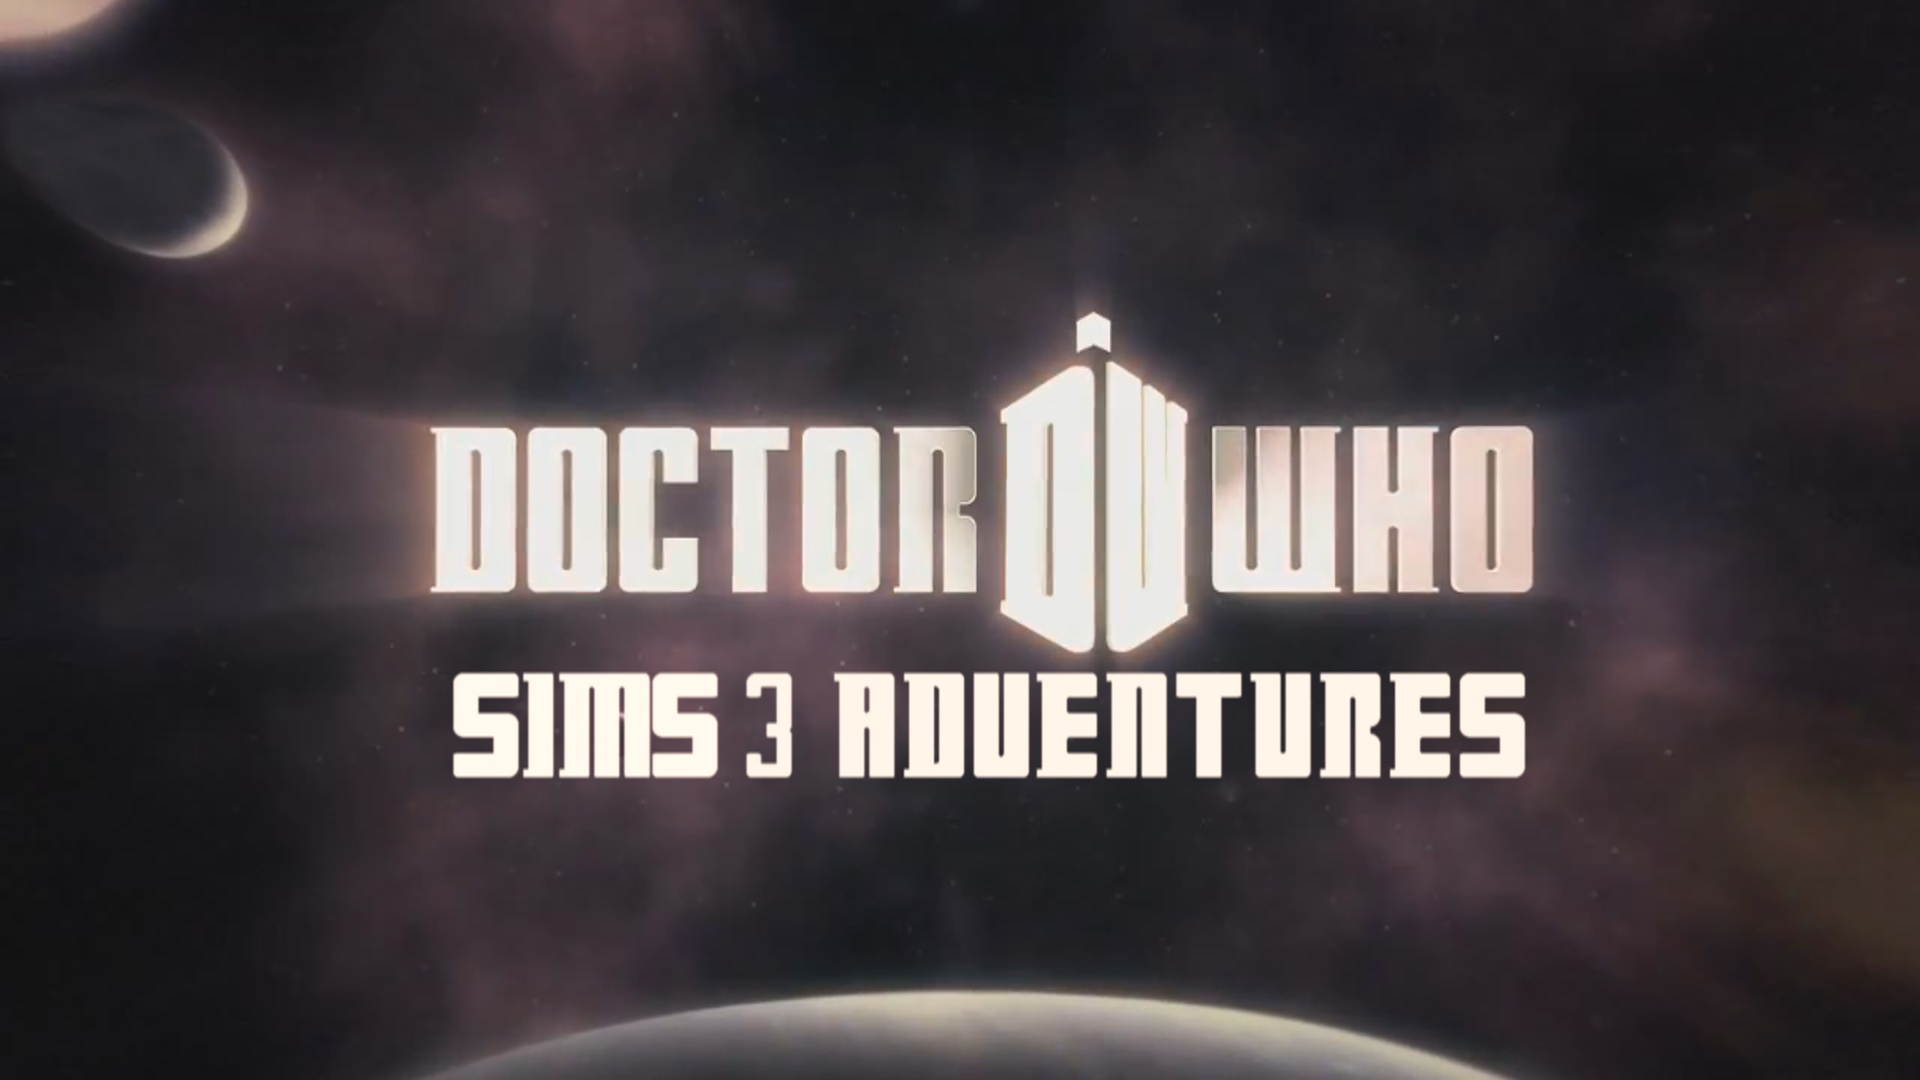 Doctor Who : Sims 3 Adventures